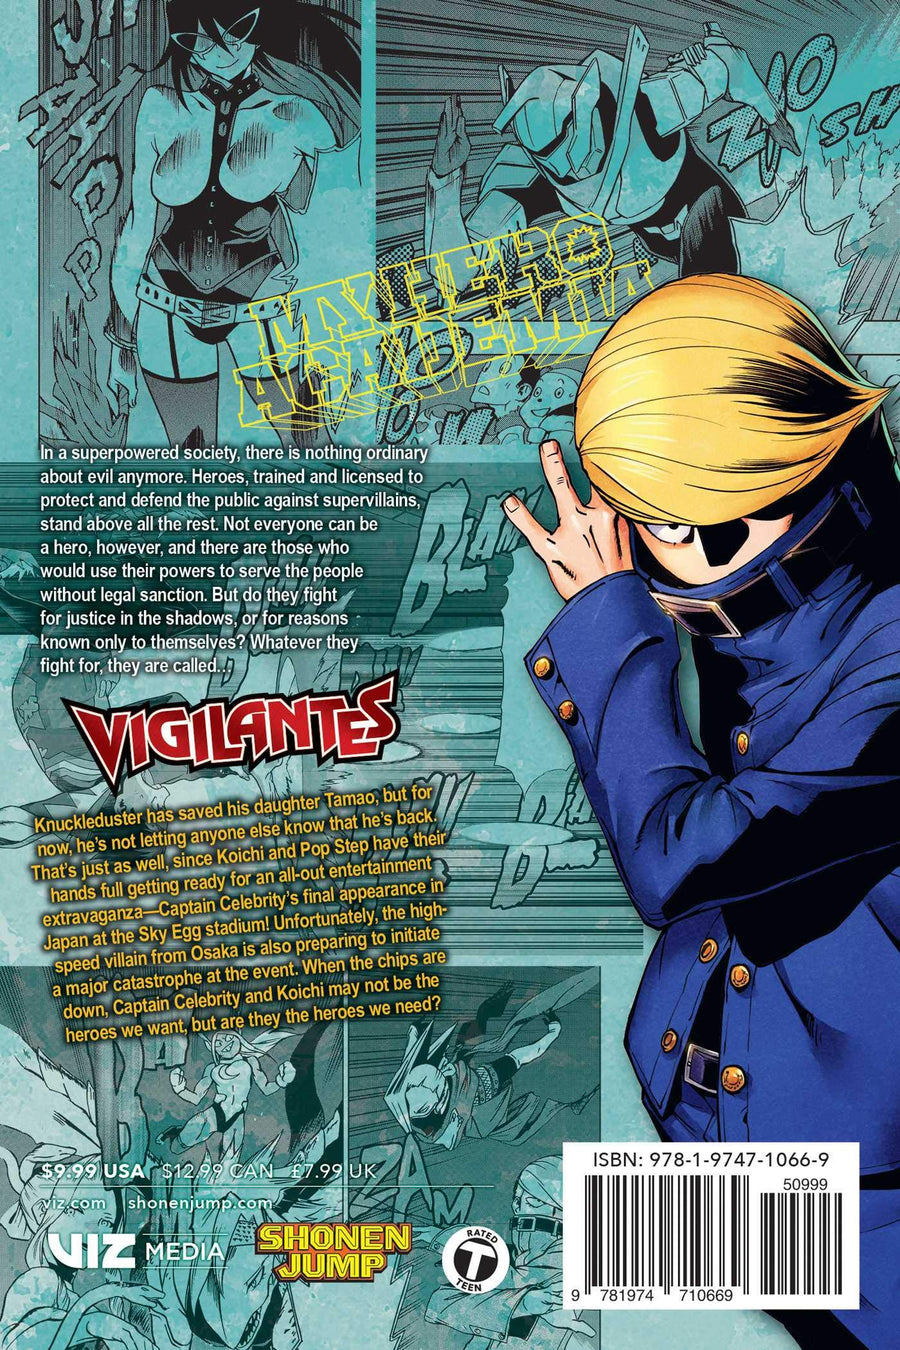 My Hero Academia Vigilantes Volume 7